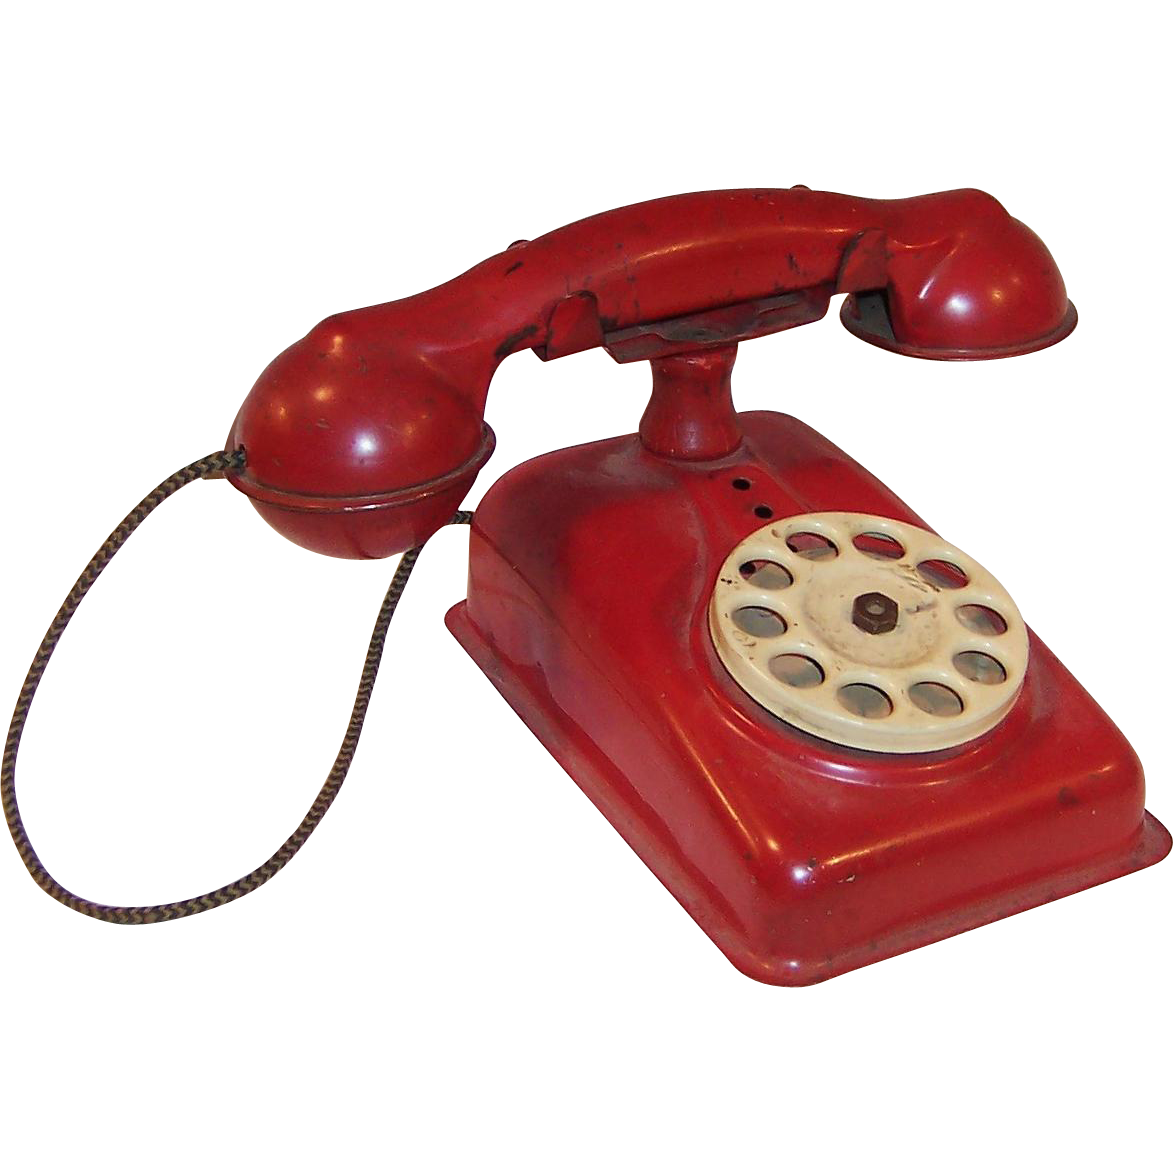 medium resolution of  vintage red at www rubylane com rubylanecom vintage 1950 s red metal toy rotary ringing phone